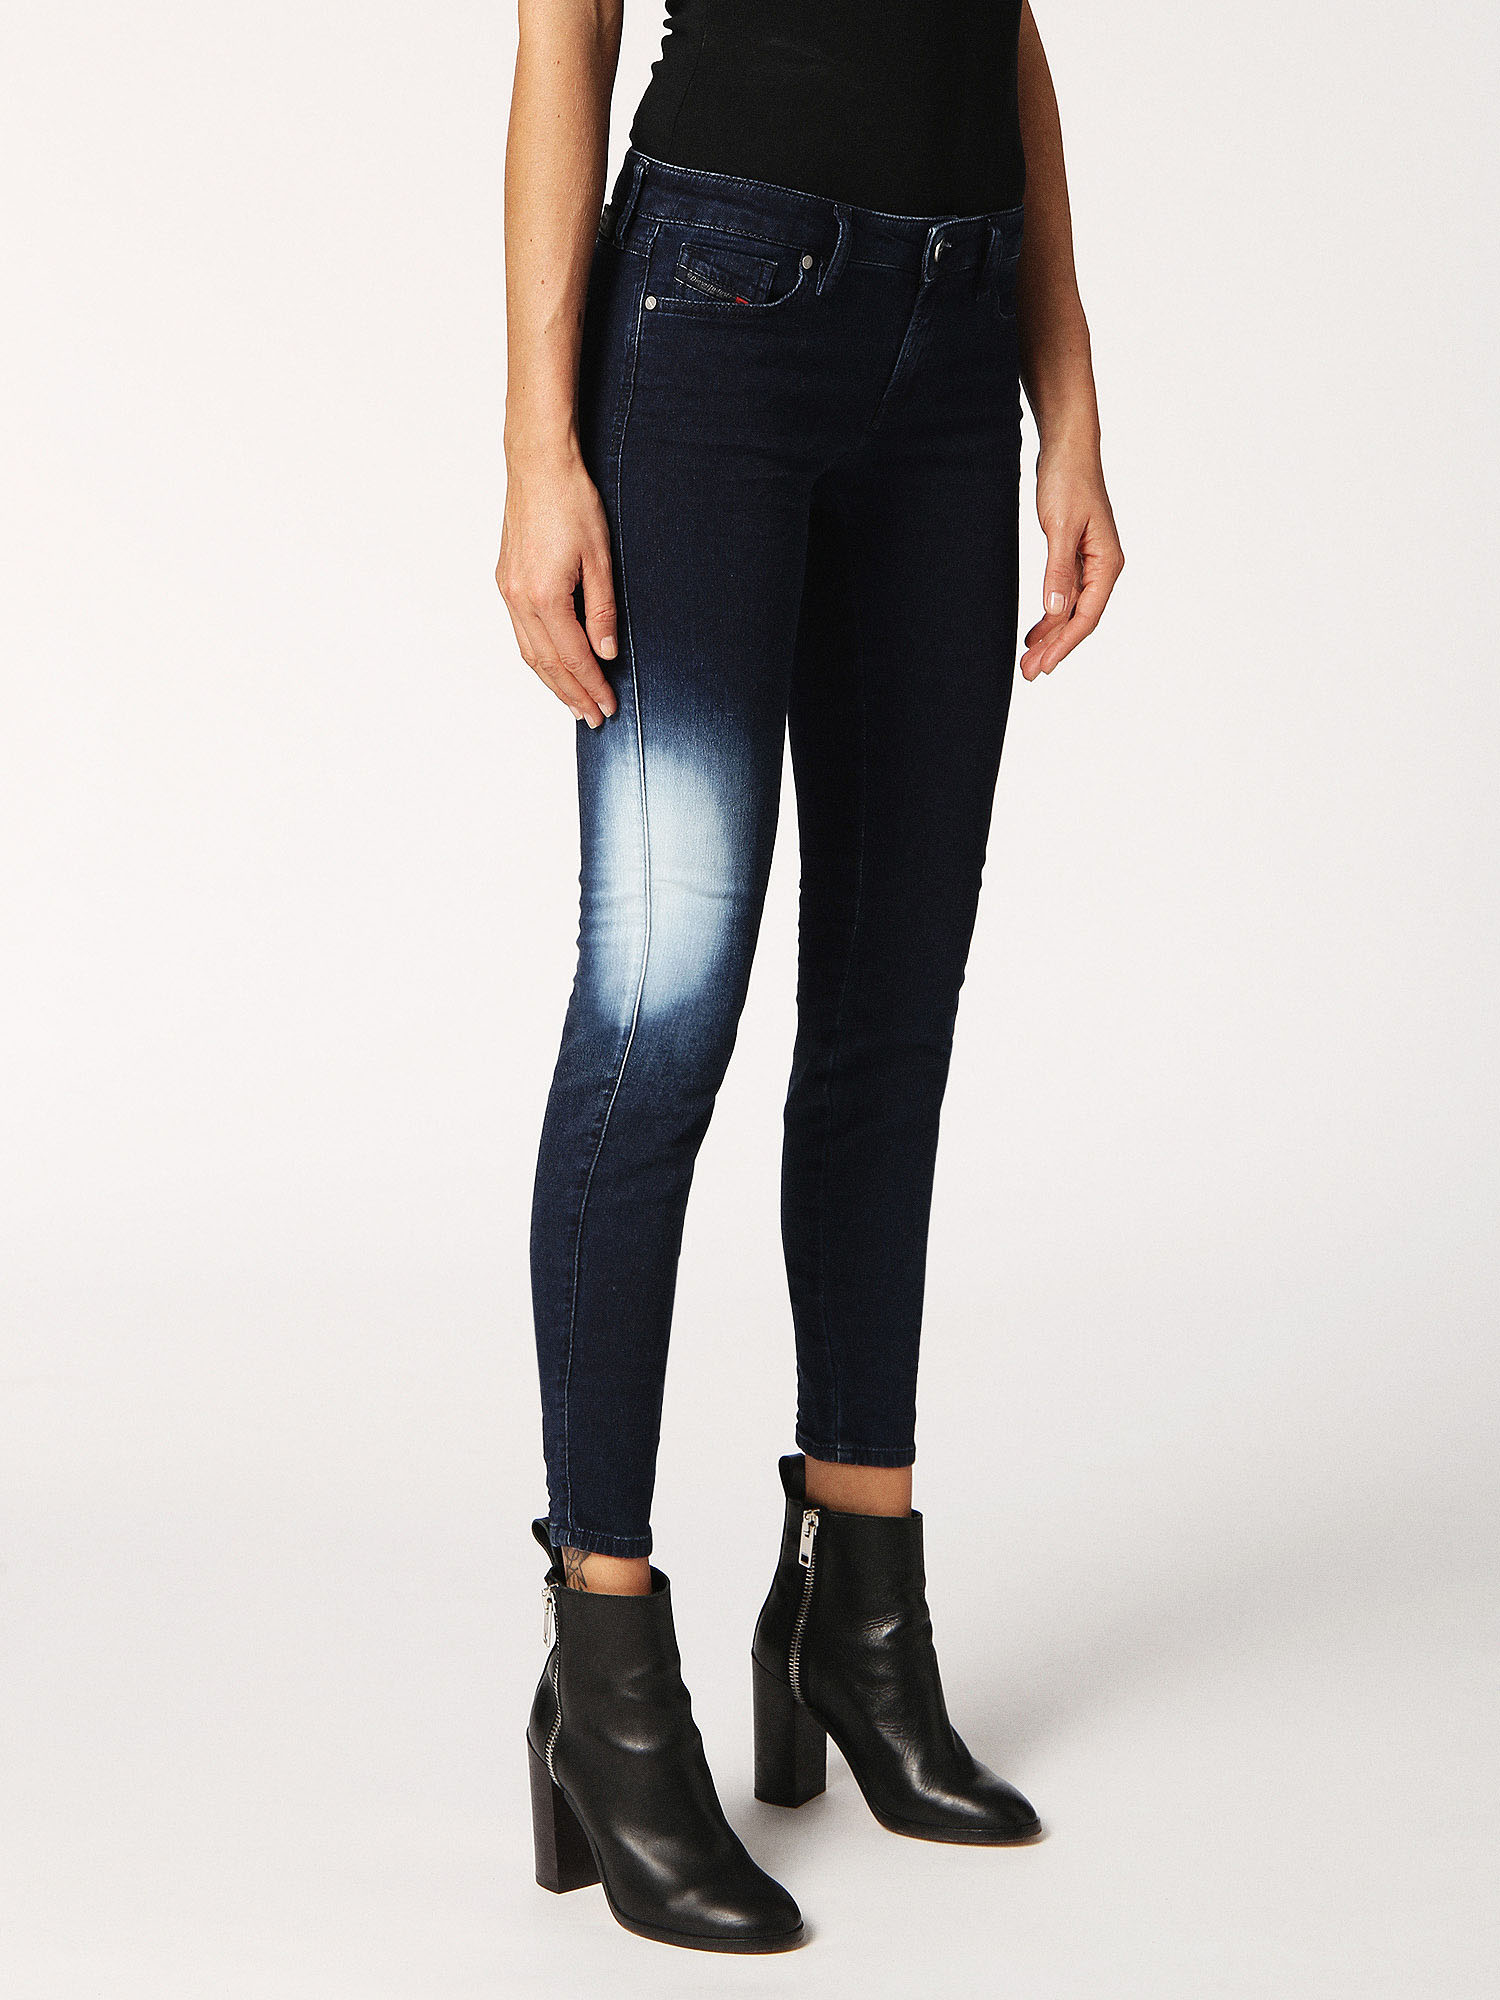 gracey women Gracey 084qj skinny jeans woman low waist, slim fit and skinny leg make gracey a jeans that easily adapt to different body shapes you ll just have to worry about which wash is your favorite one.